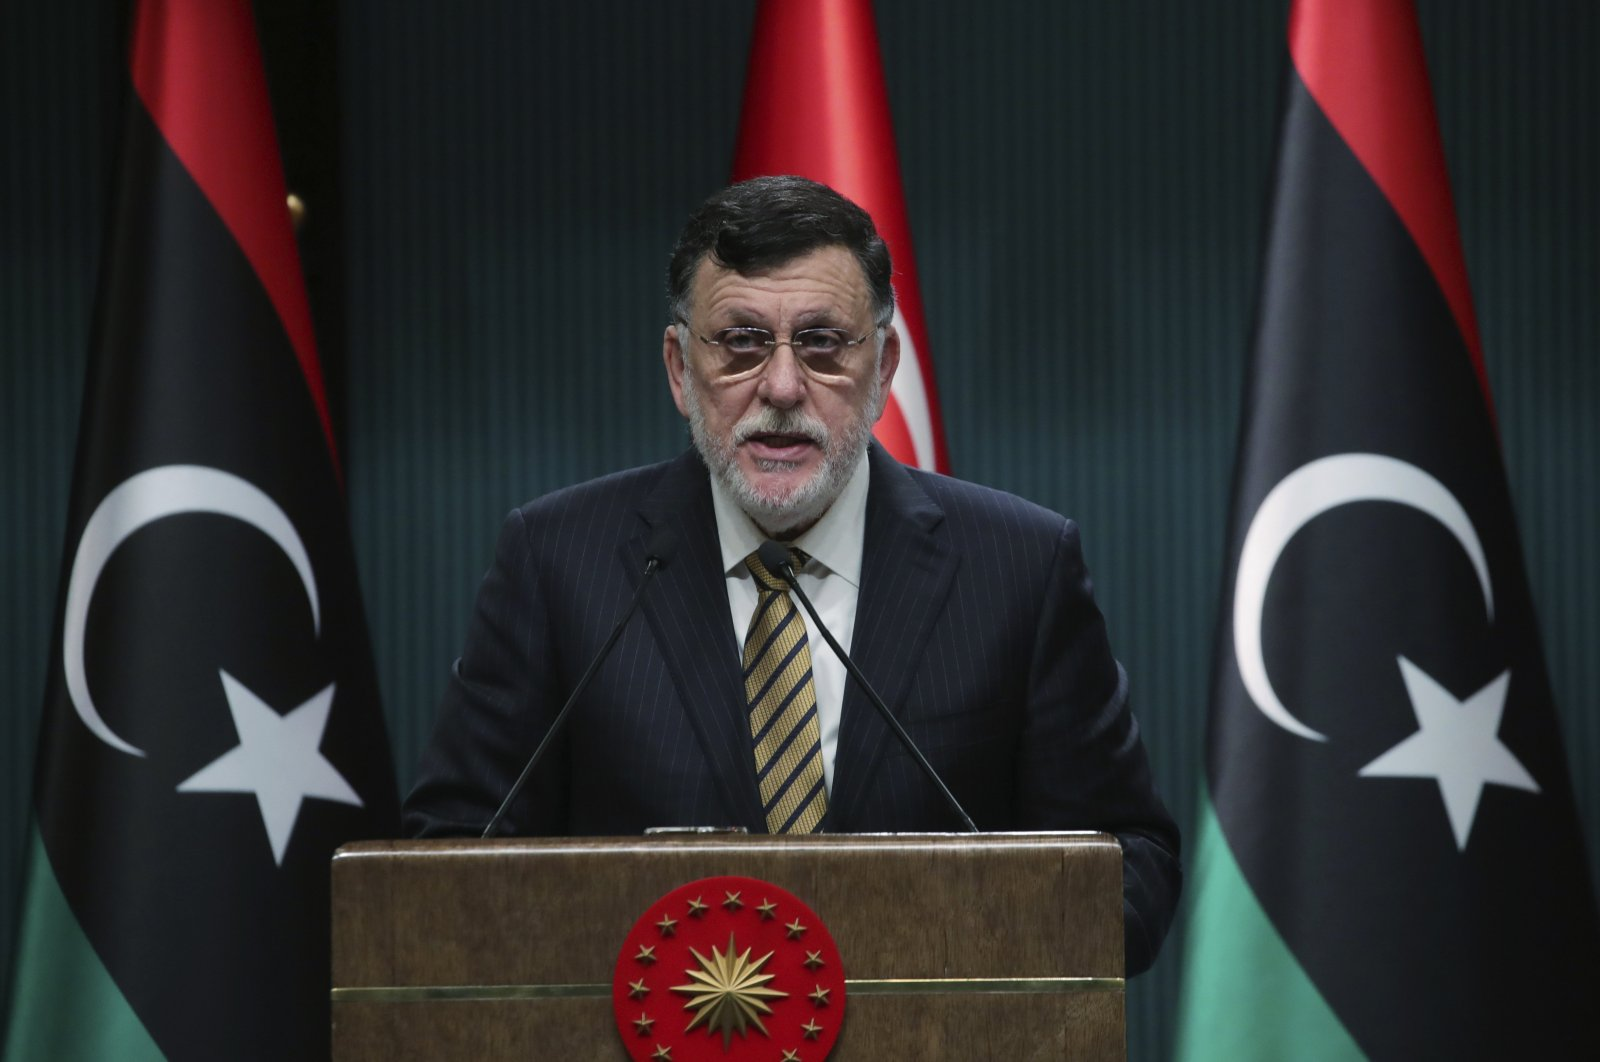 Fayez Sarraj, the head of Libya's internationally-recognized government, speaks at a joint news conference with President Recep Tayyip Erdoğan, in Ankara, Turkey, June 4, 2020. (AP Photo)